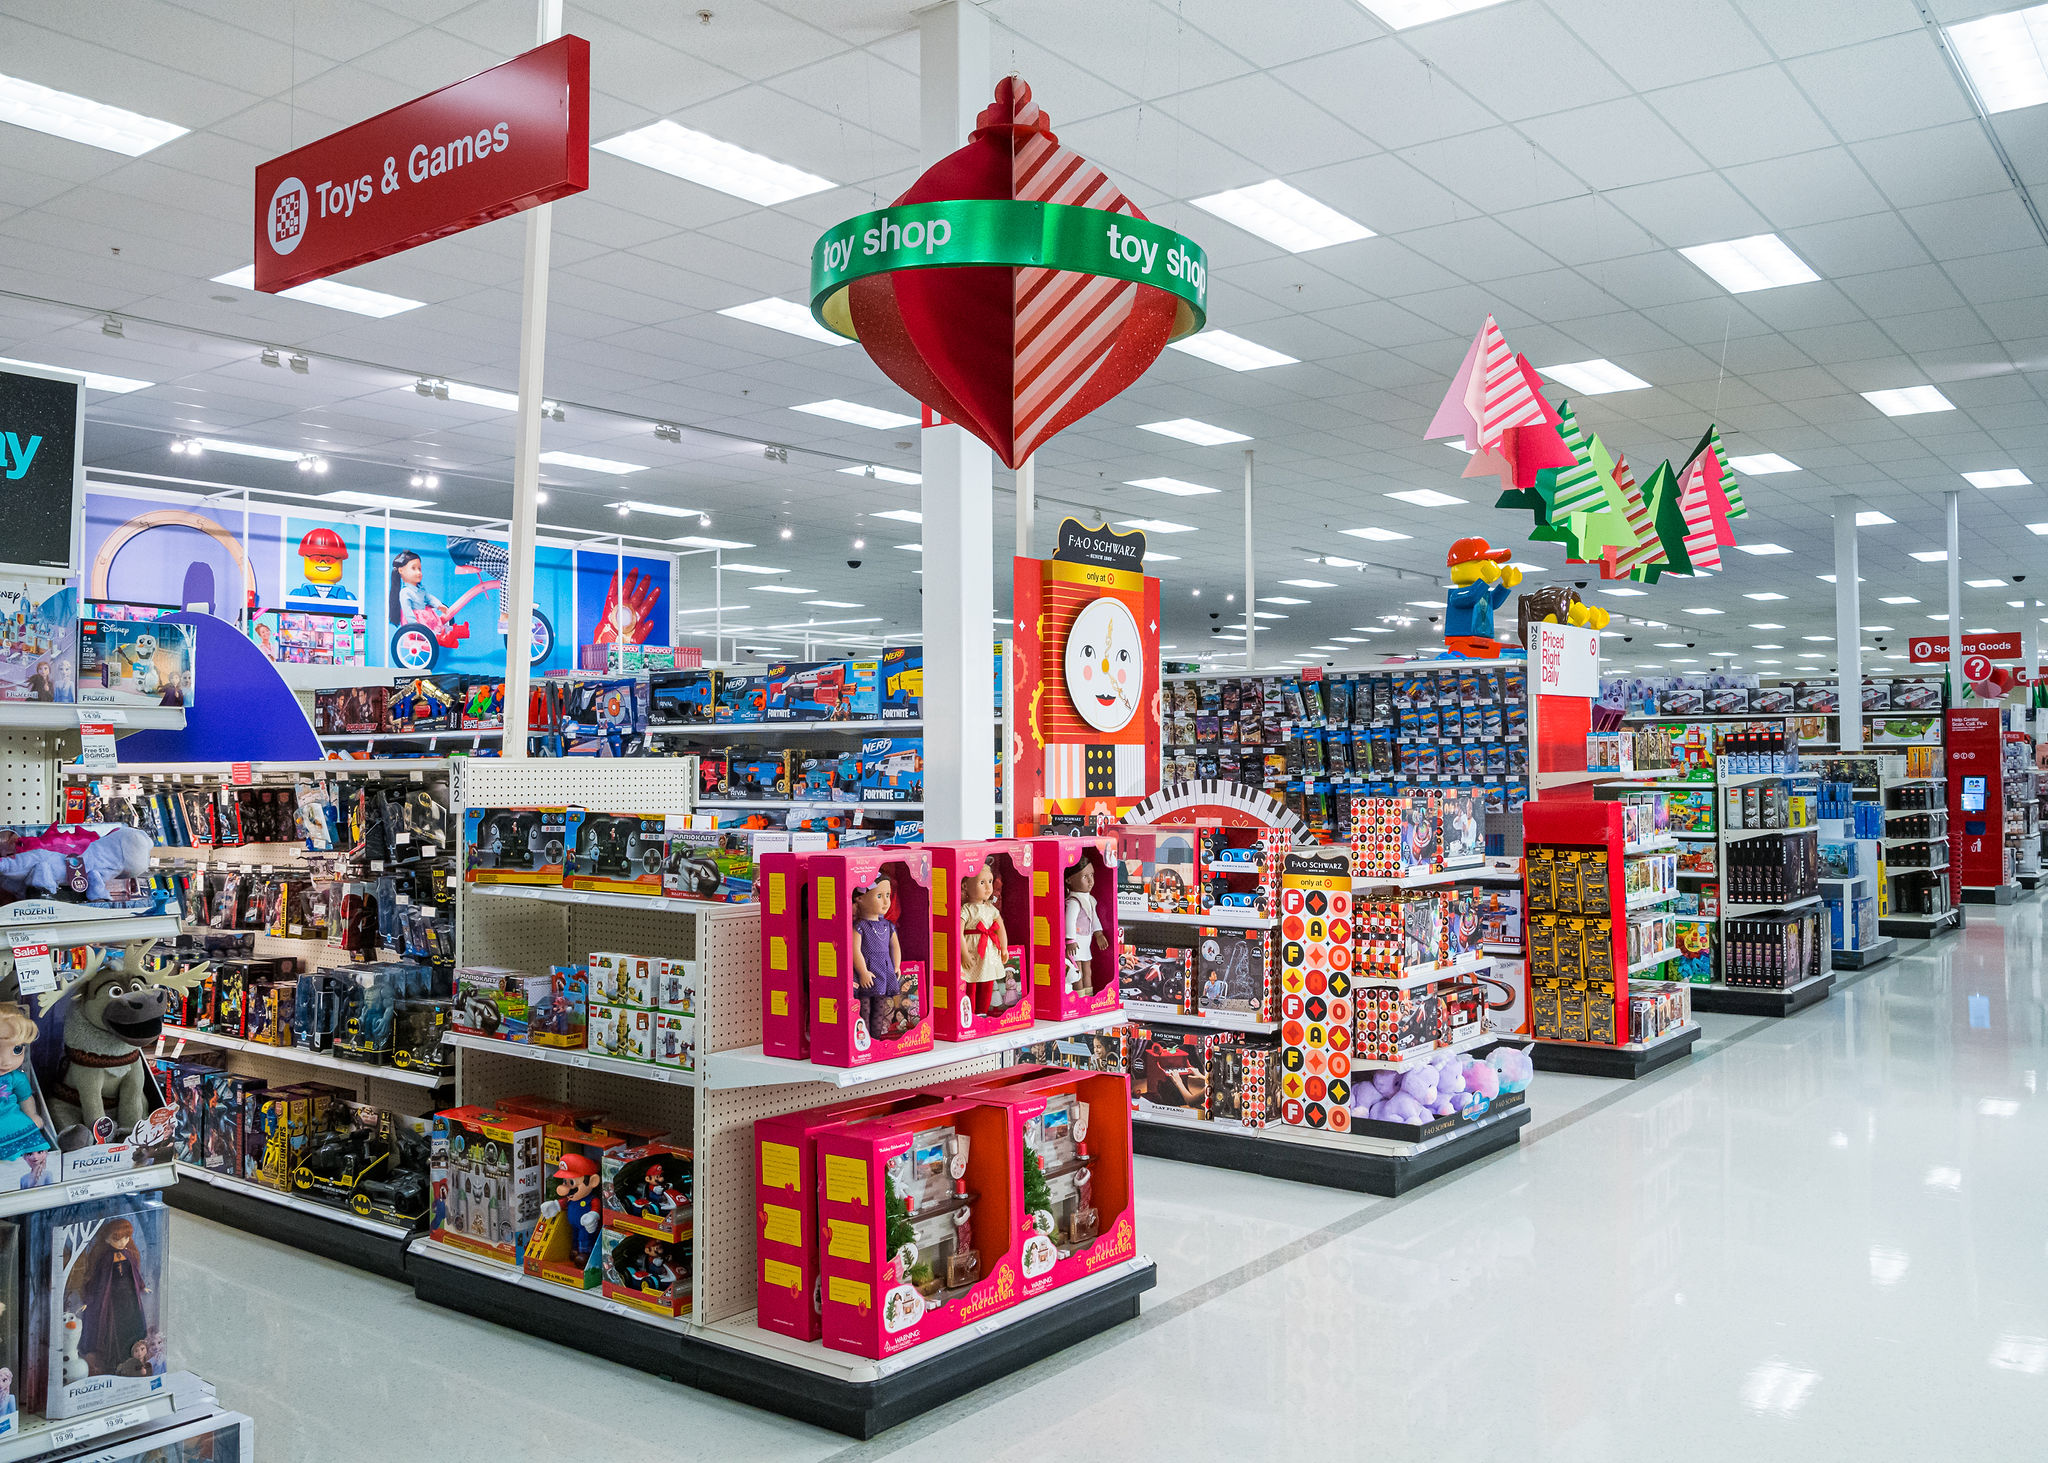 Target Cyber Monday Sales, Deals on Home, Electronics, Appliances and More